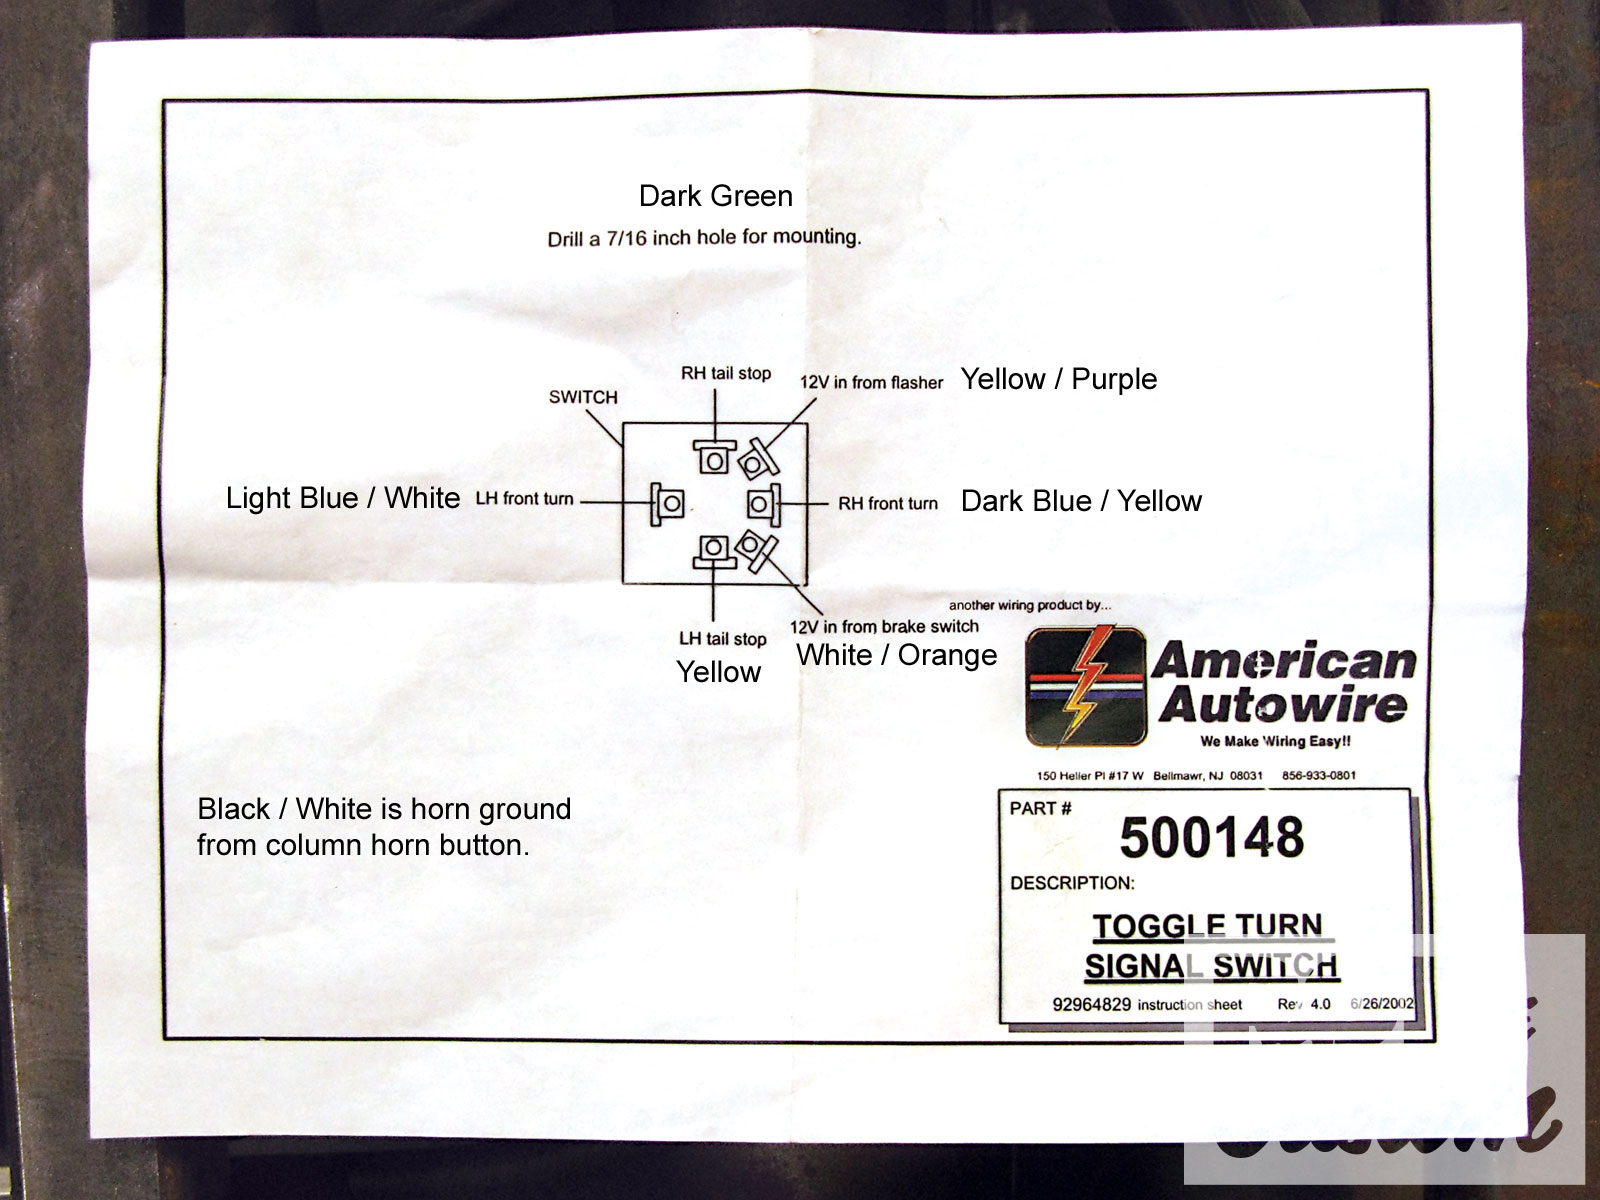 Wiring Diagram For A Network Switch Turn Signal Steering Column Bypass In The Blink Of A